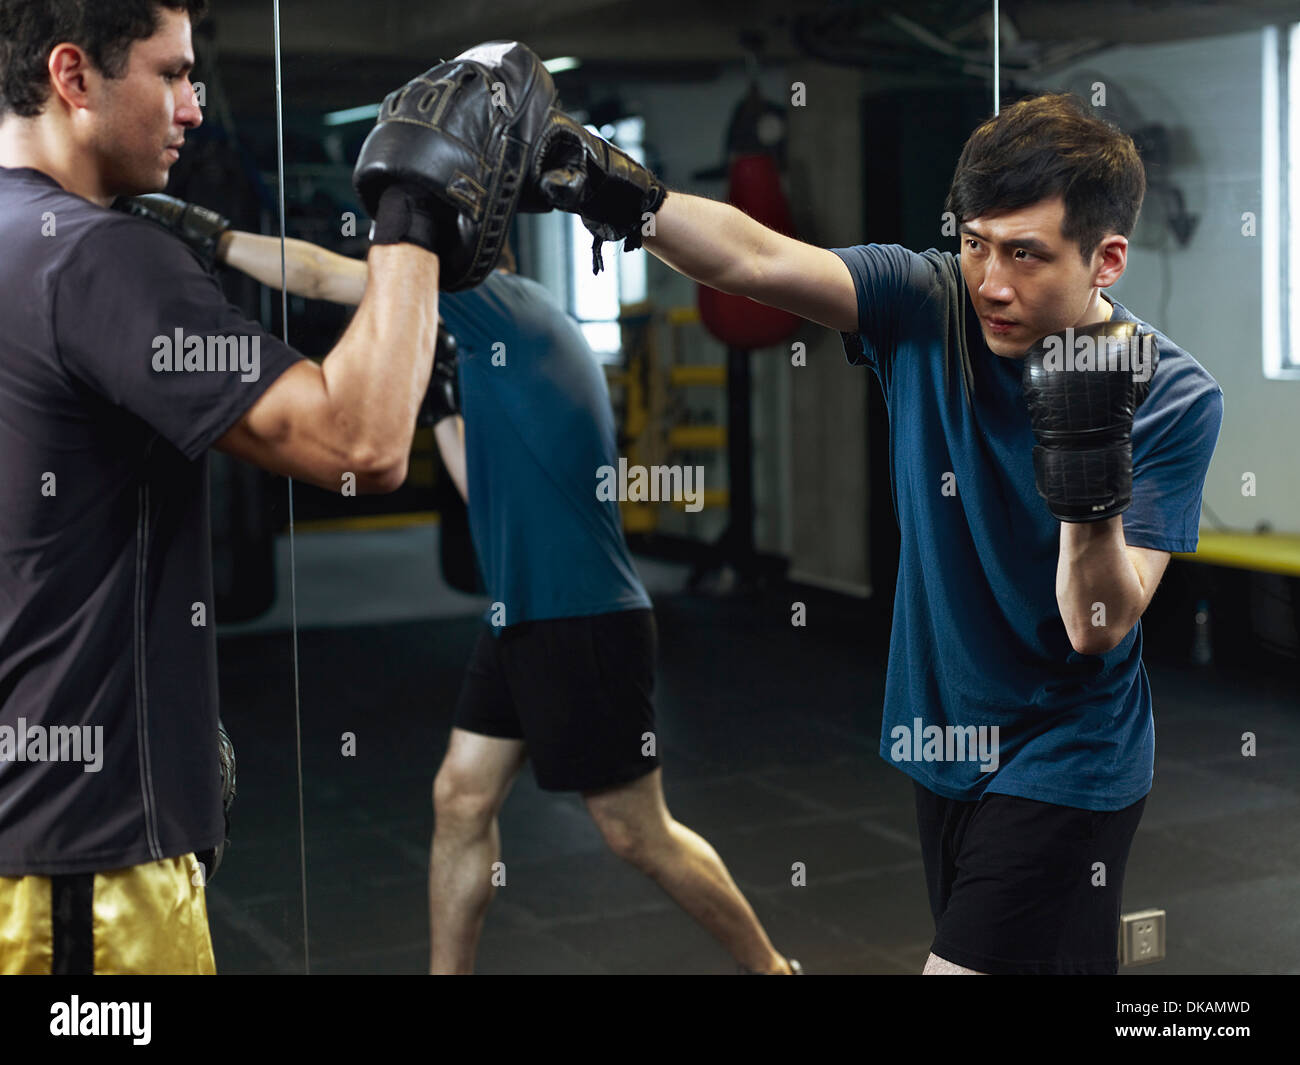 Boxers sparring with gloves and pads - Stock Image